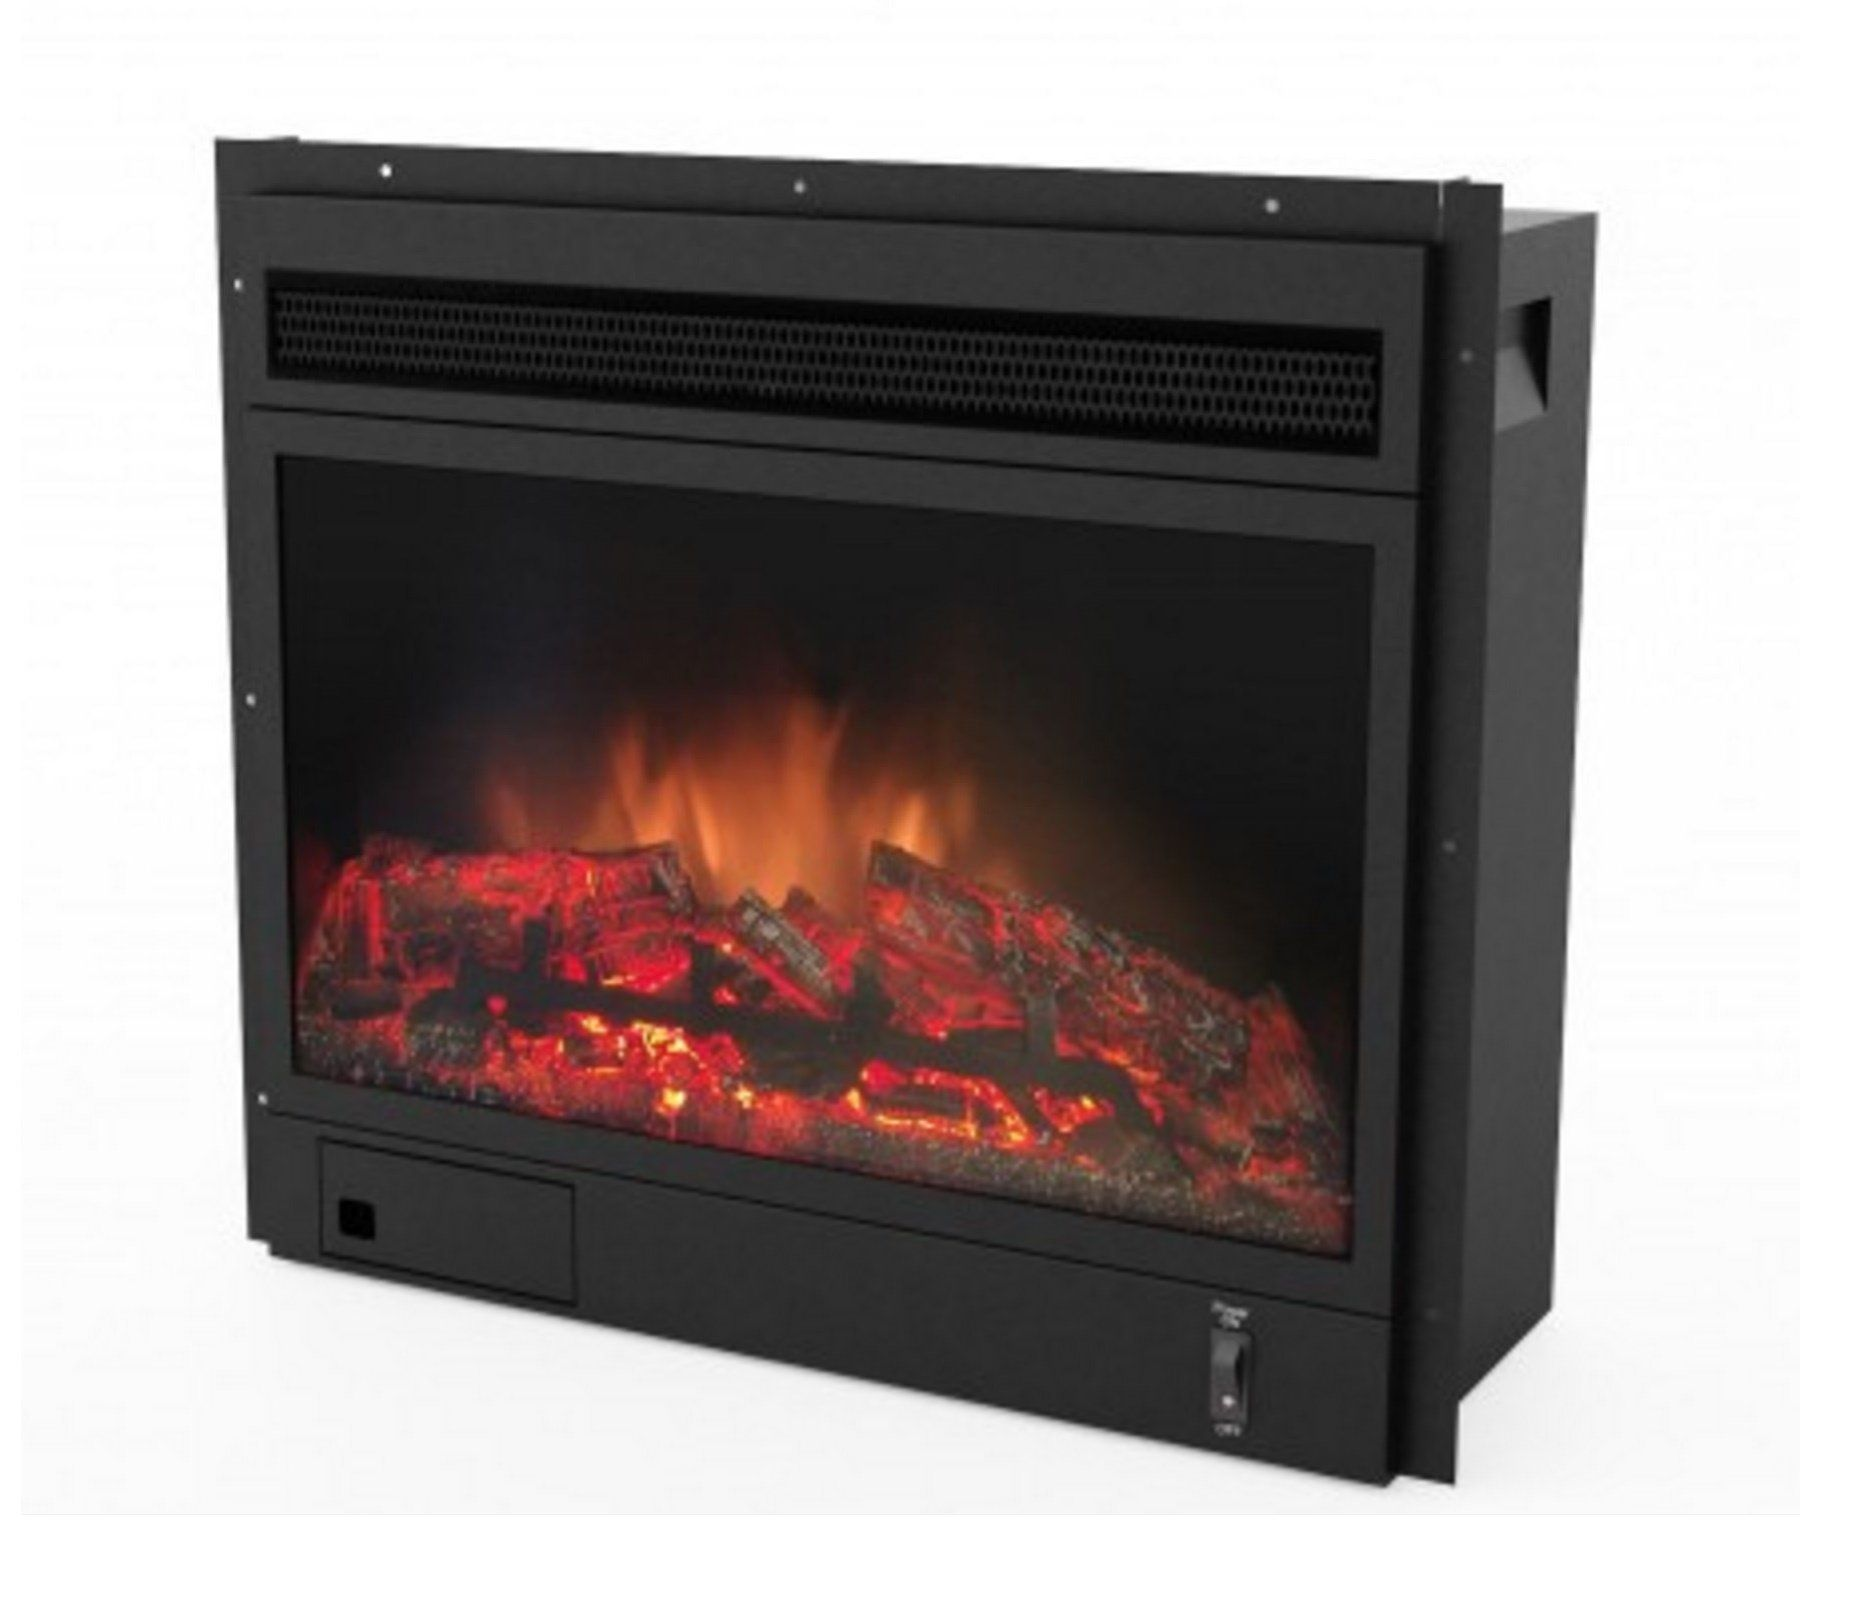 CorLiving EEPF Sonax Electric Fireplace Equipped with an